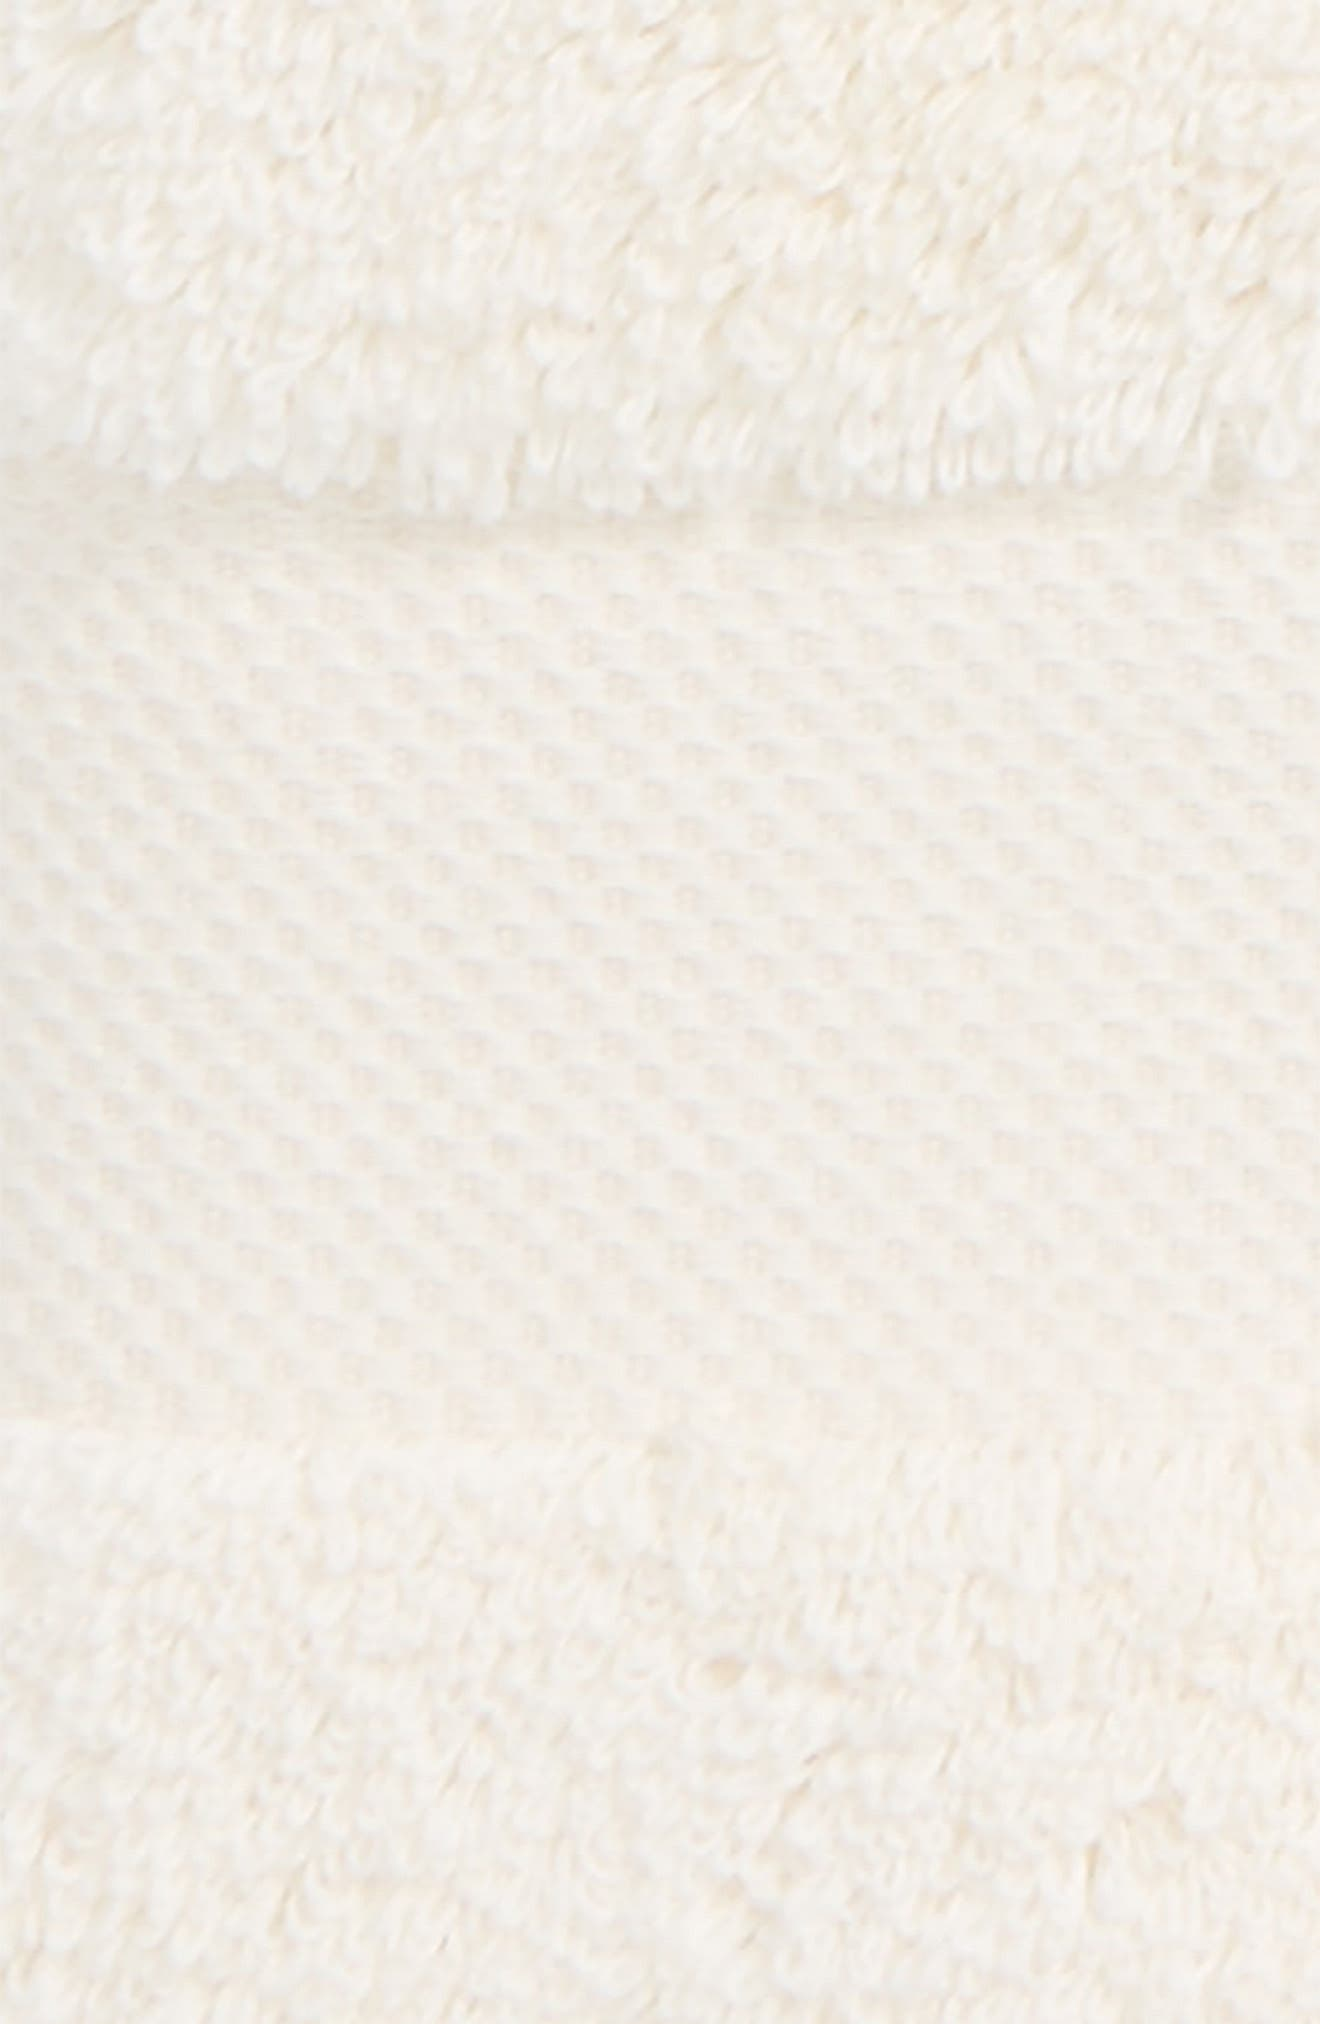 Lotus Hand Towel,                             Alternate thumbnail 2, color,                             Ivory